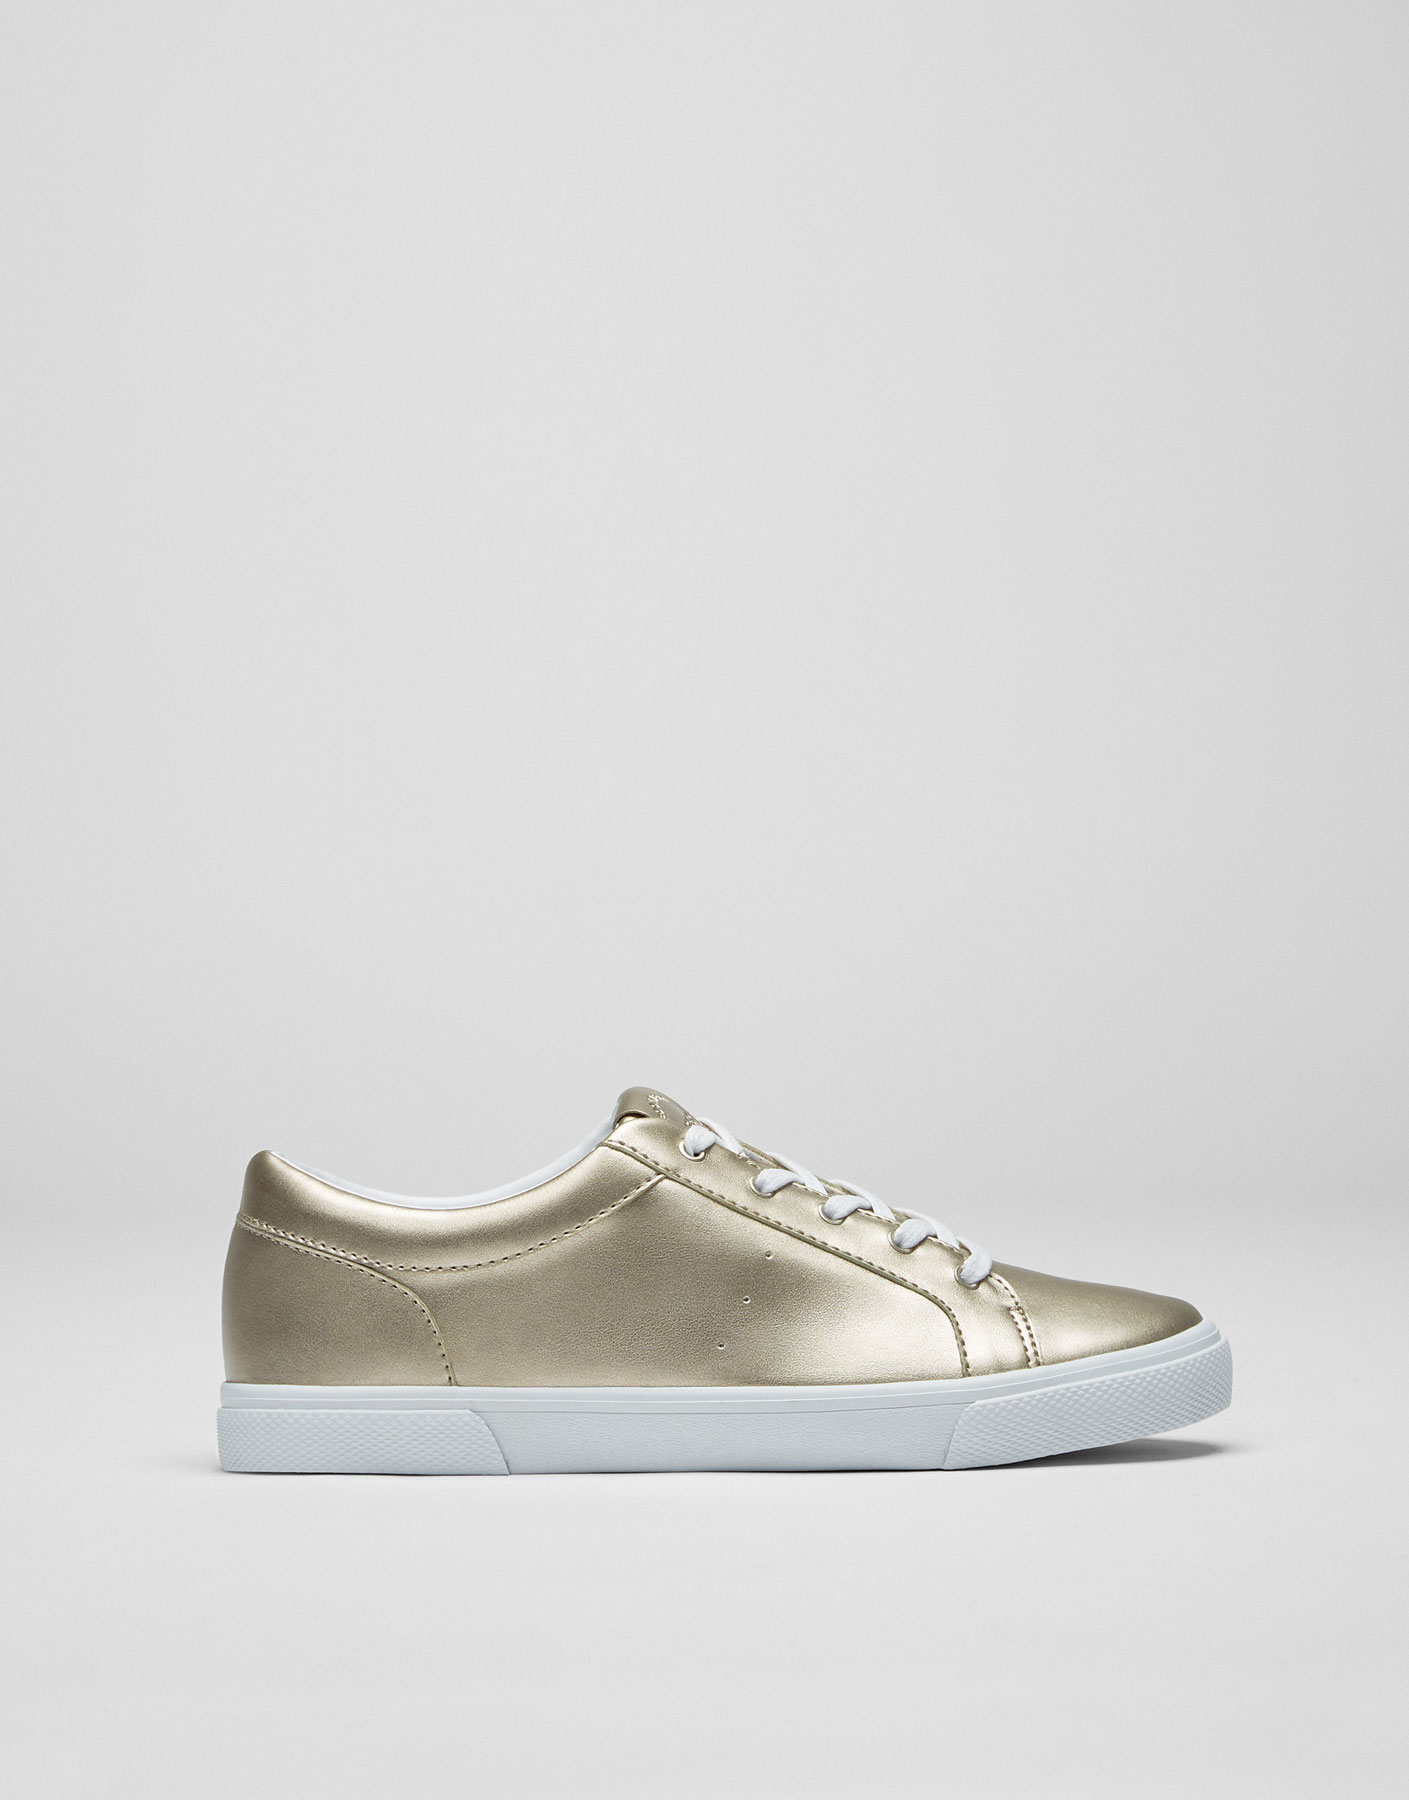 Basic golden metallic plimsolls